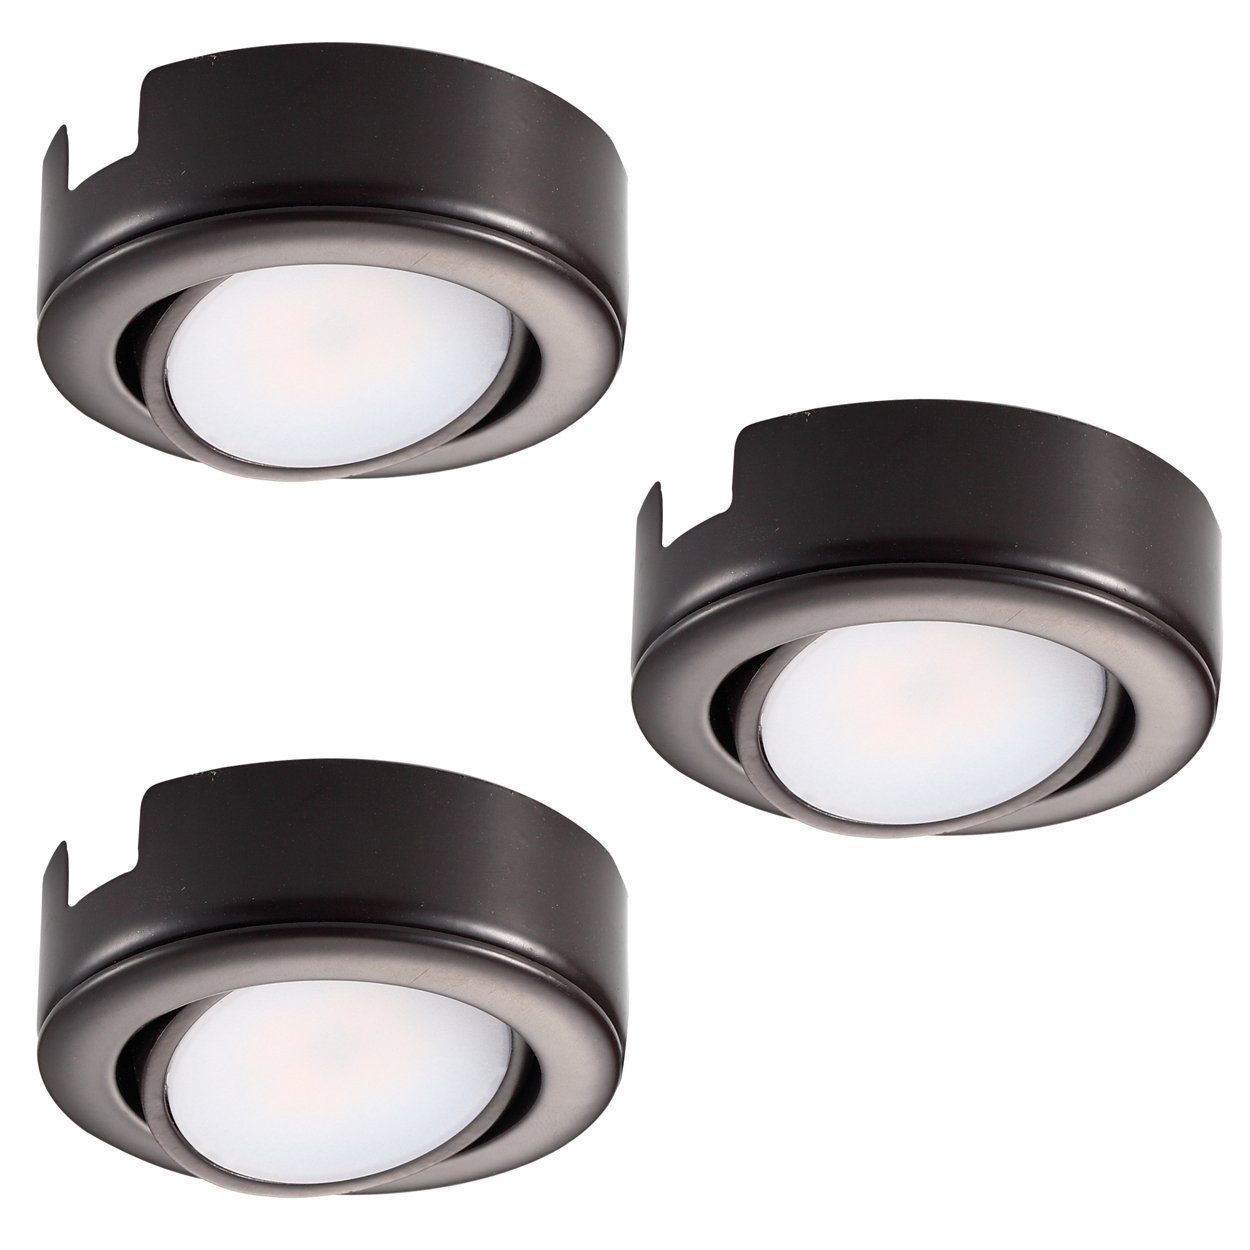 GetInLight Dimmable and Swivel, LED Puck Light Kit with ETL List, Recessed or Surface Mount Design, Bright White 4000K, Bronze Finish, (Pack of 3), IN-0107-3-BZ-40